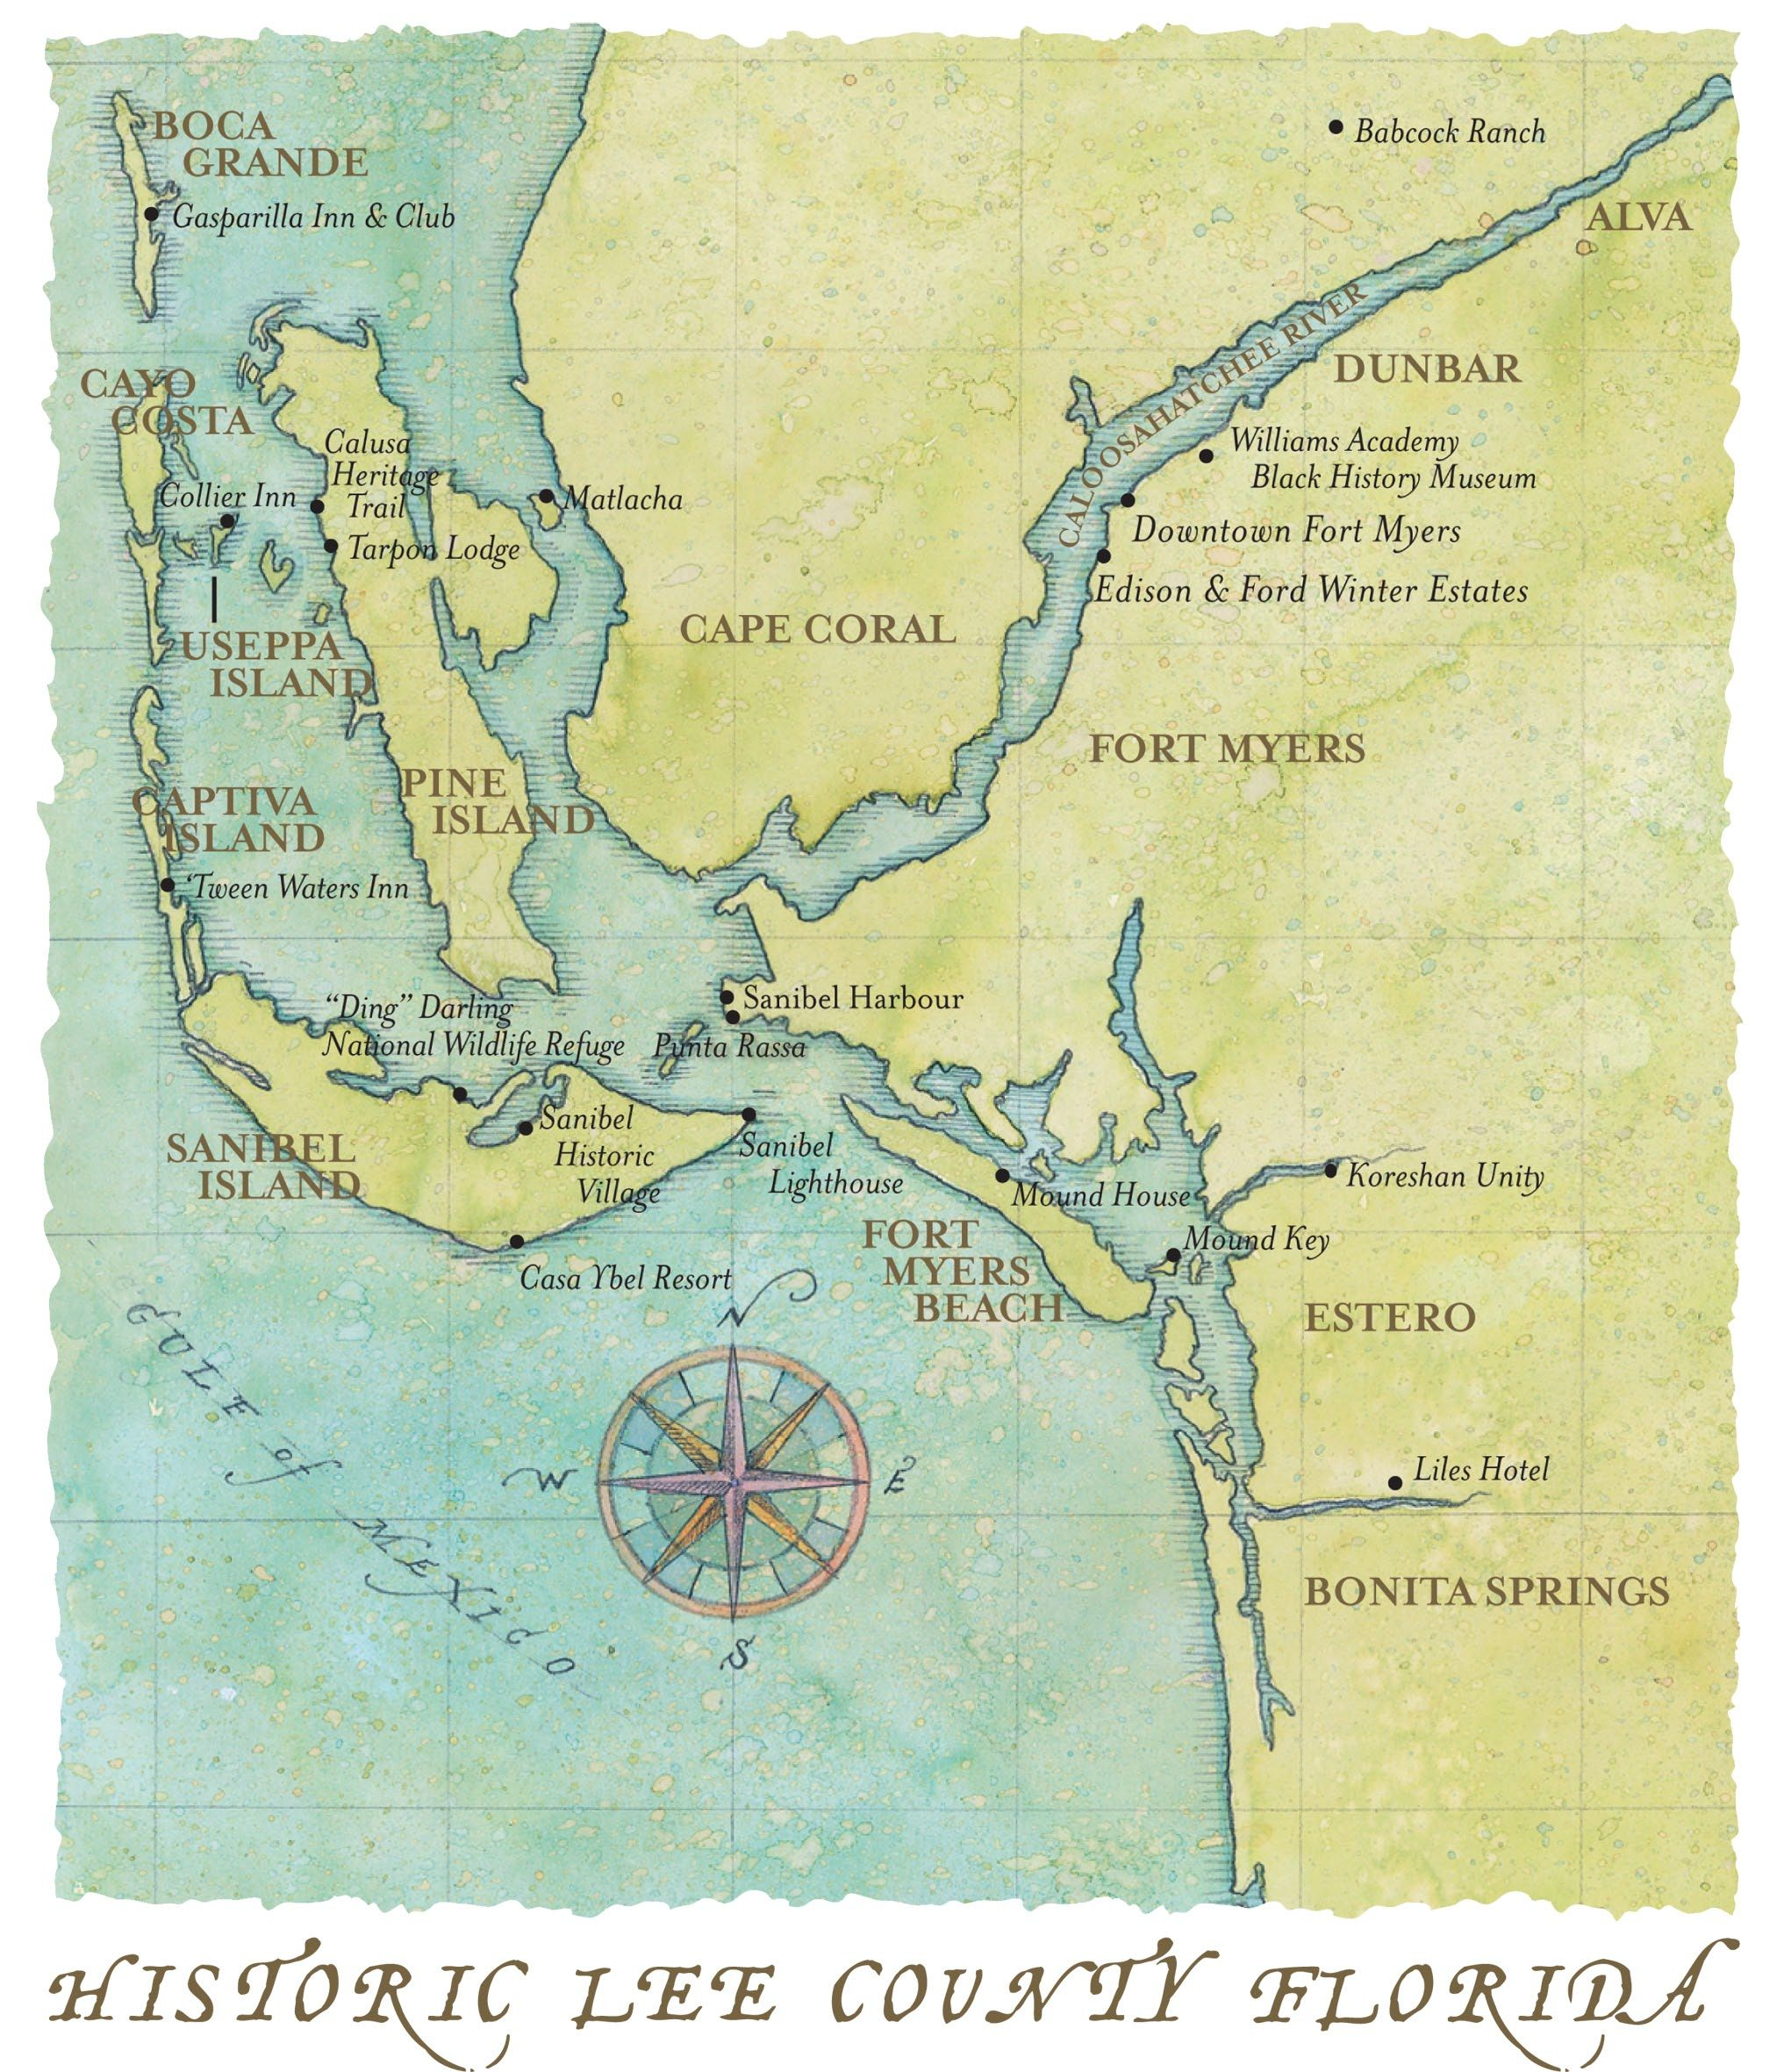 Pin by Jana Caldwell on MAPS | Fort myers beach, World map ...